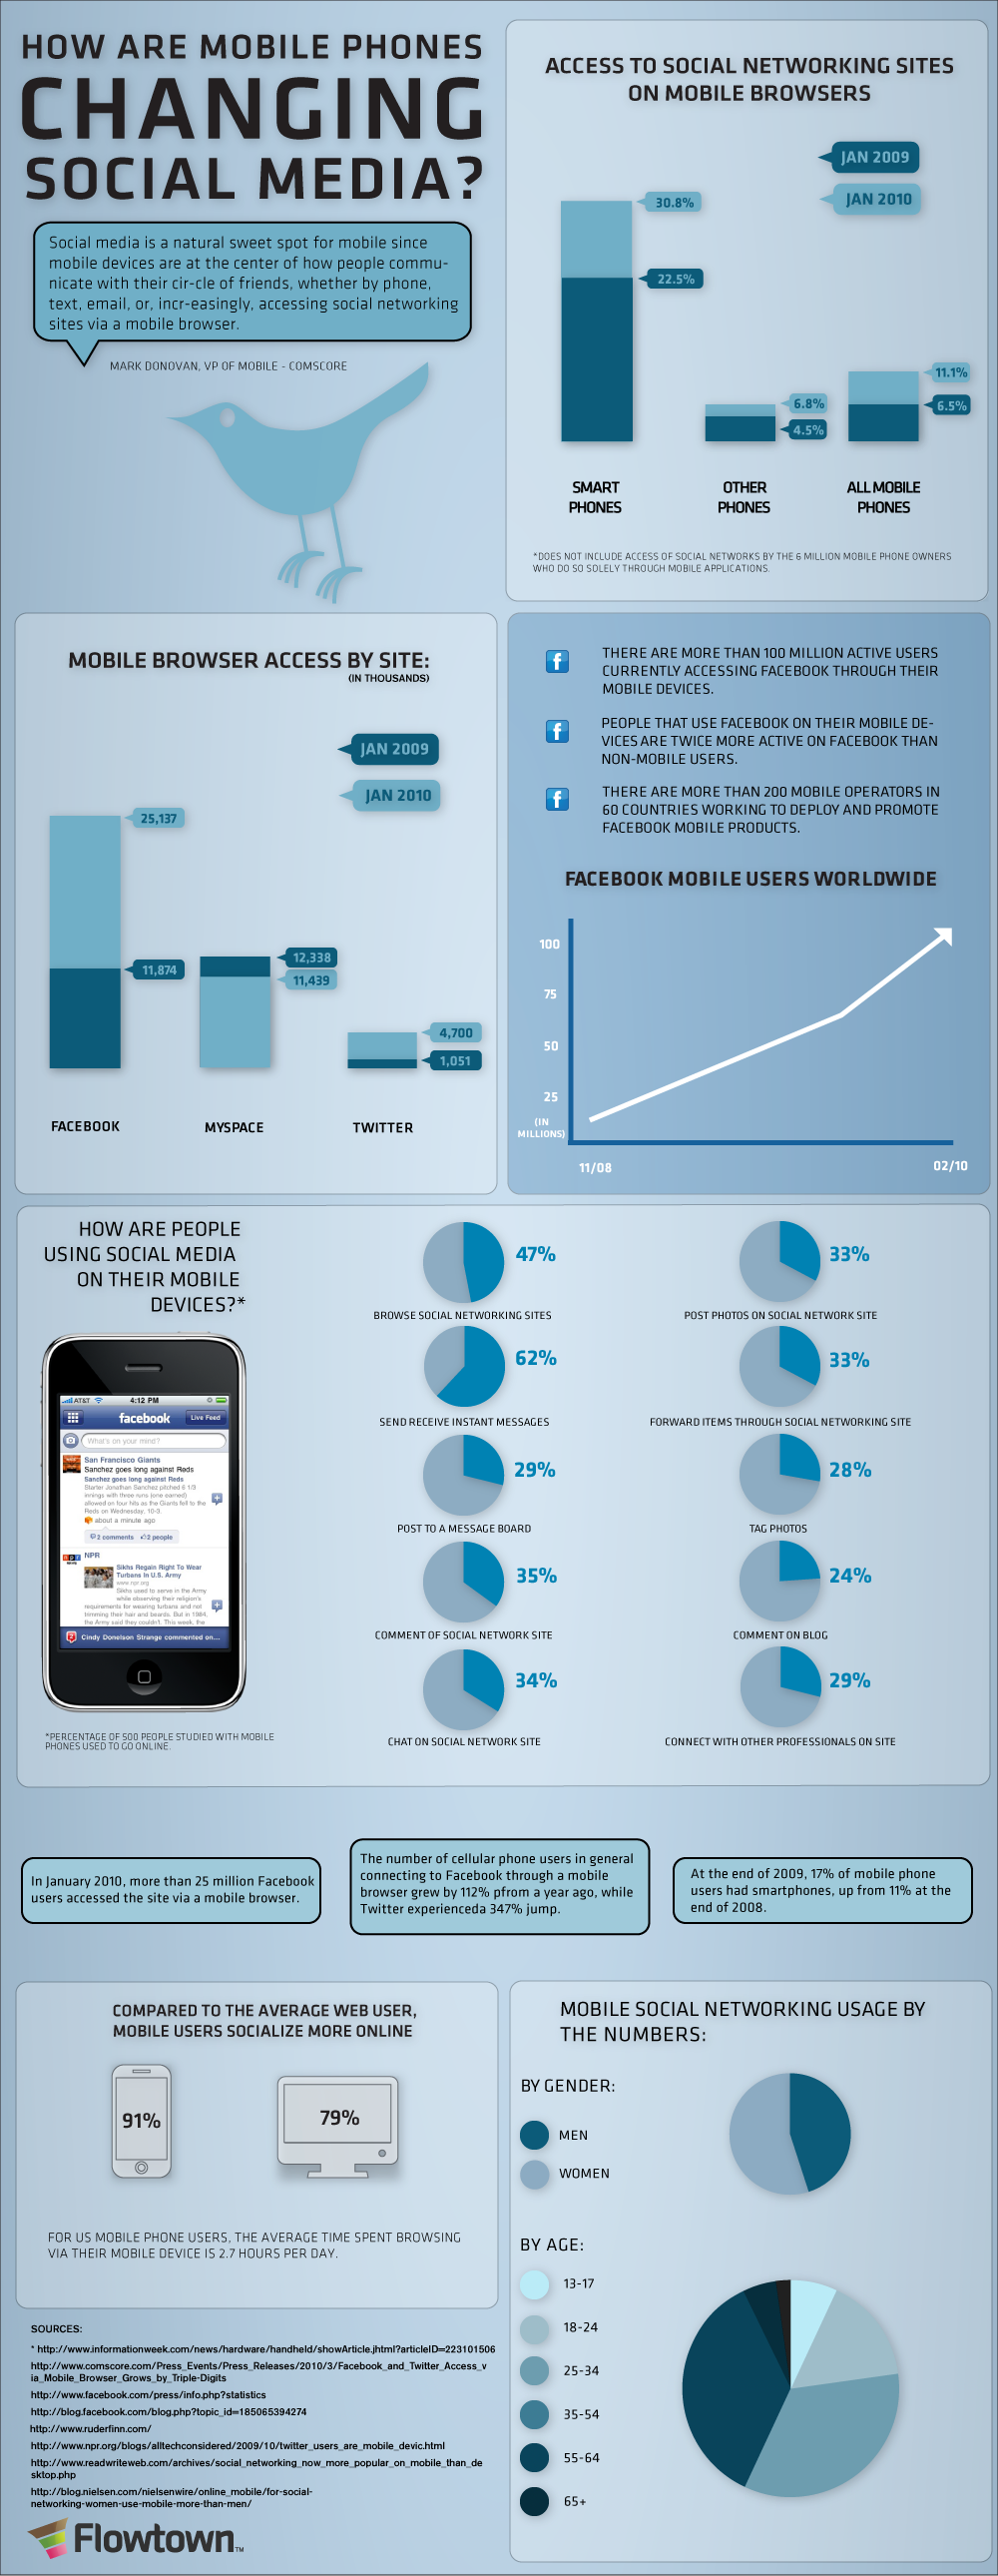 How-Are-Mobile-Phones-Changing-Social-Media-infographic